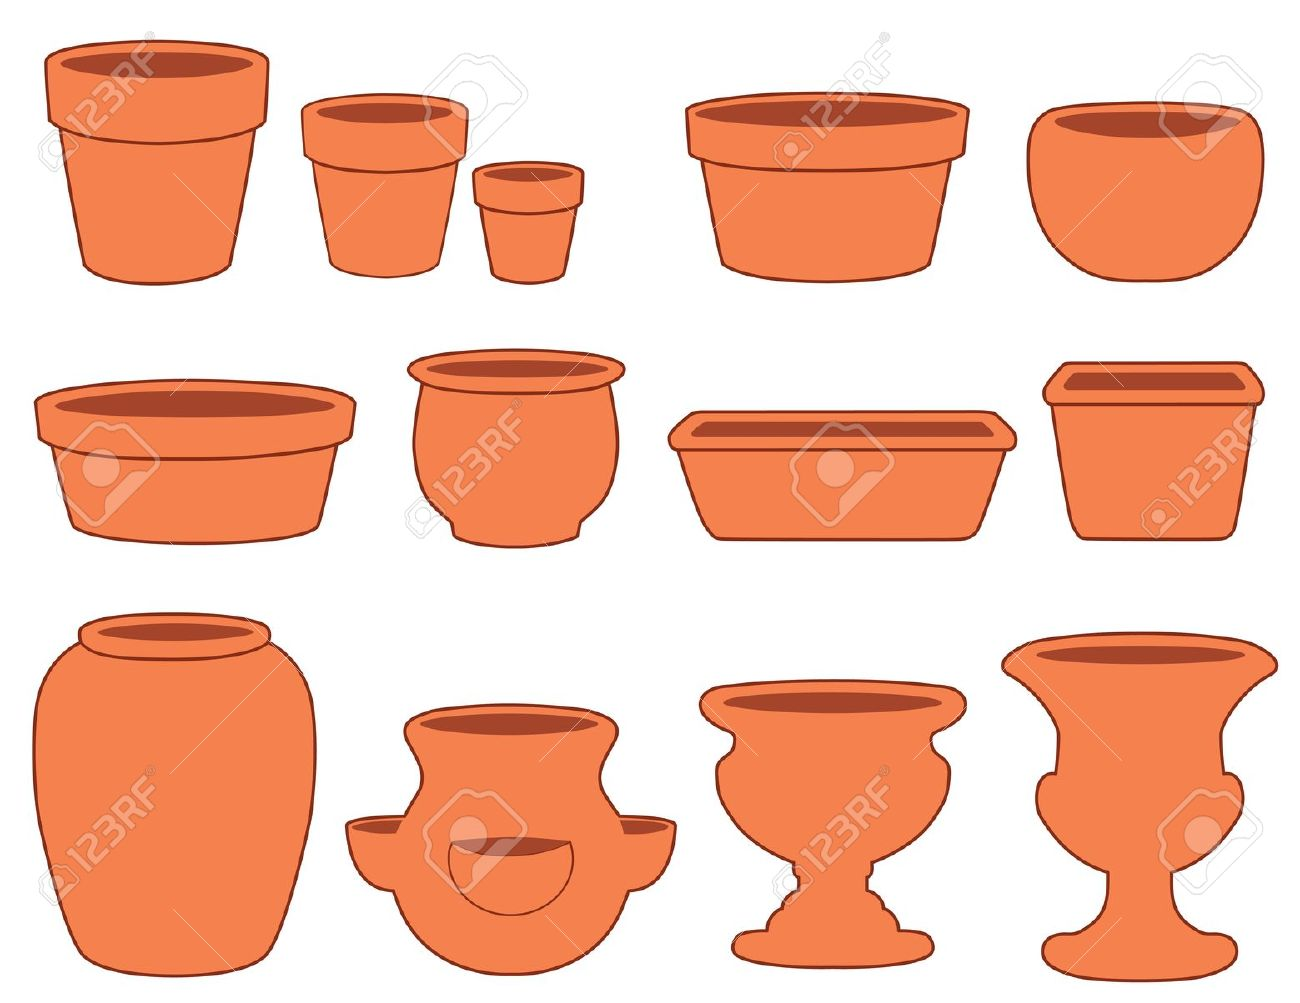 Garden Flowerpots And Pottery Small, Medium And Large Clay Pots.